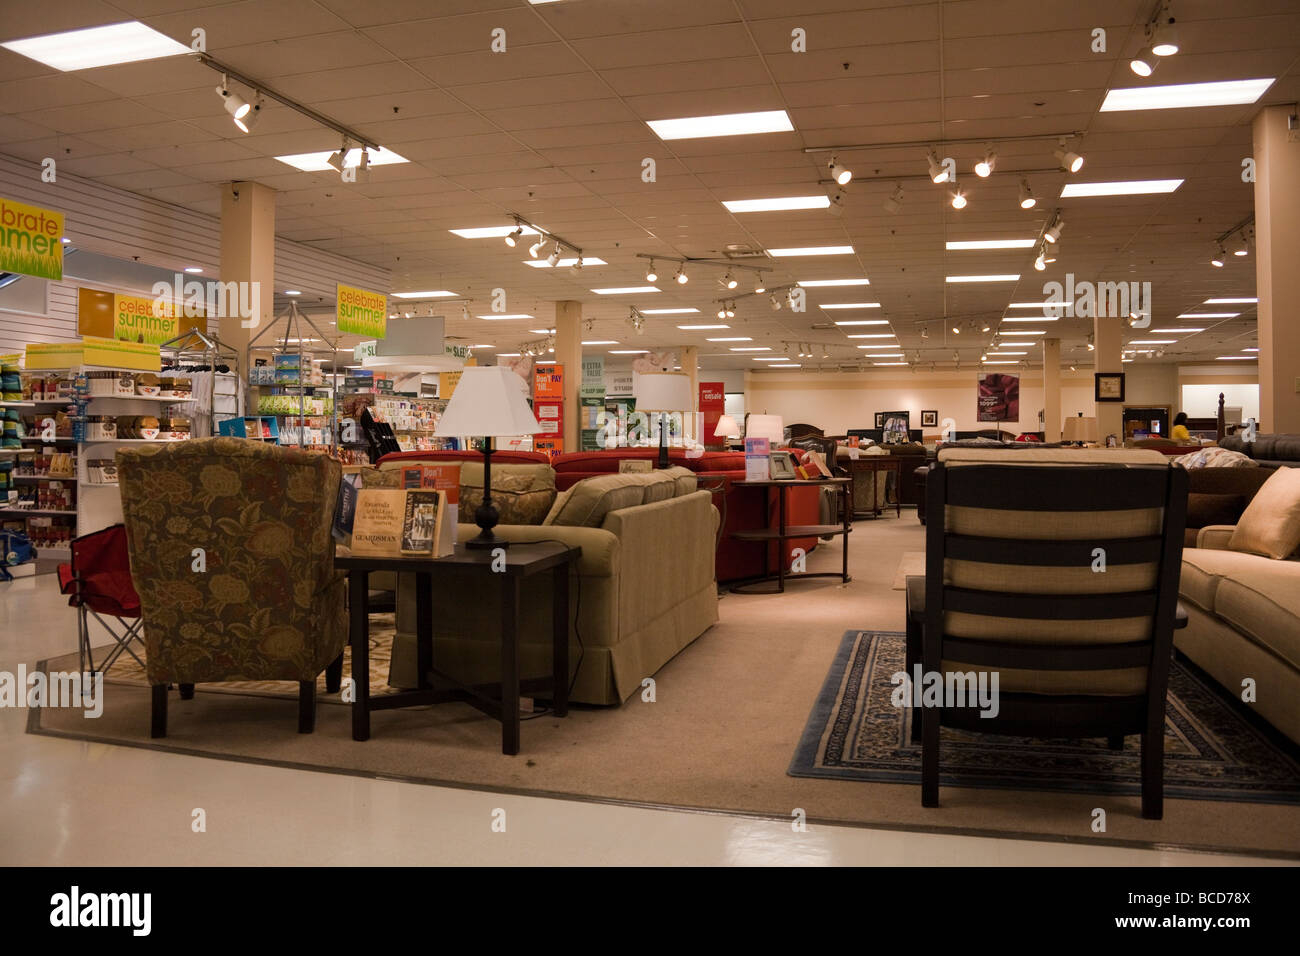 Department Store Interior Furniture Stockfotos & Department Store ...